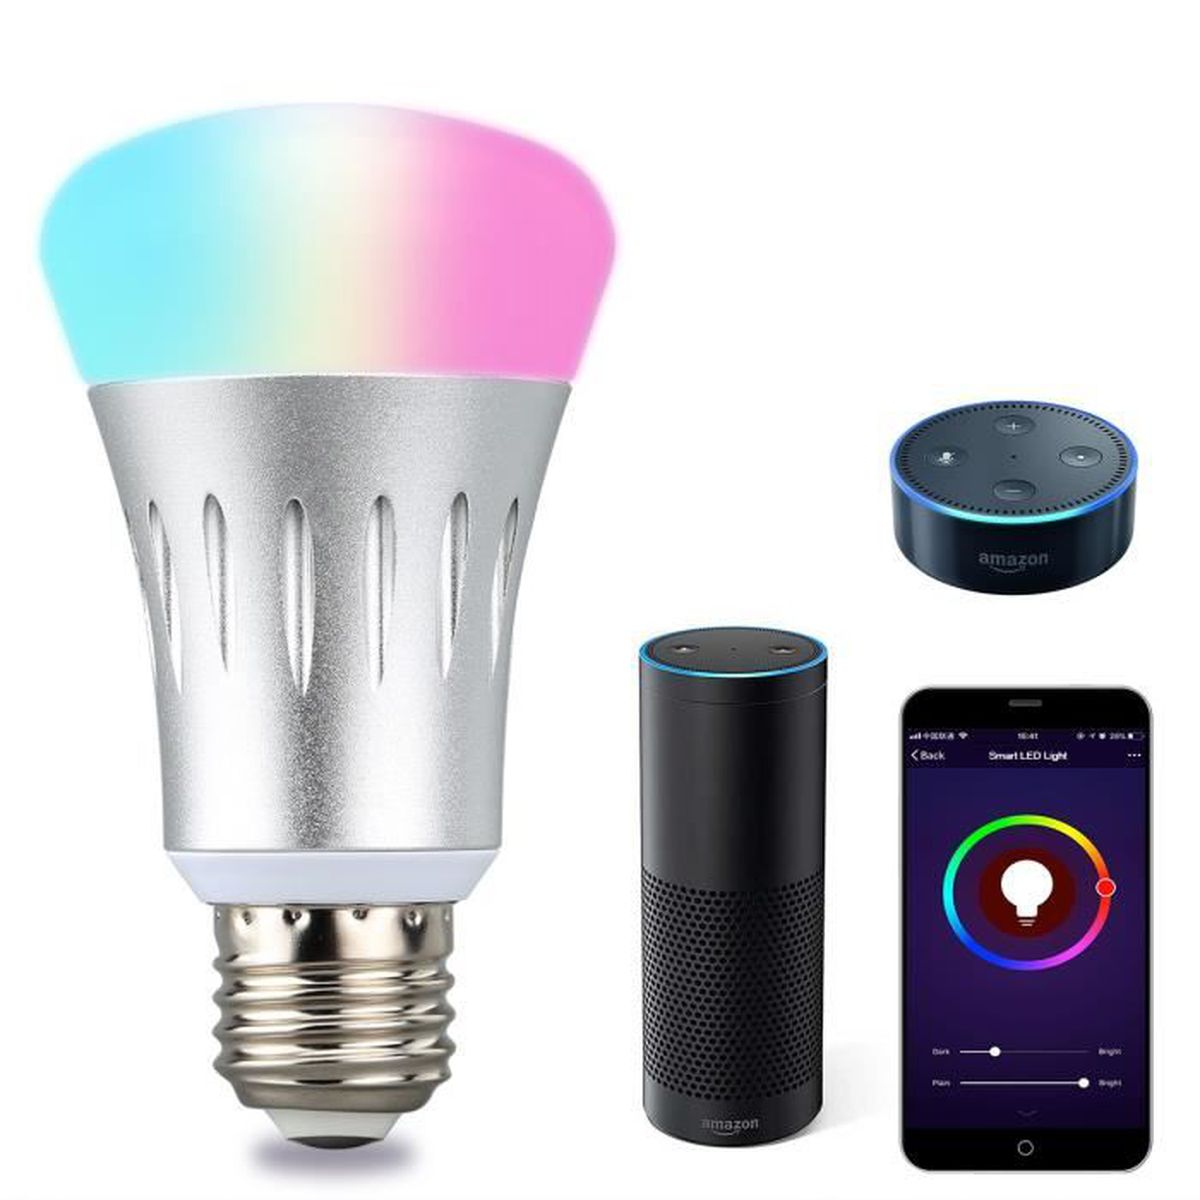 Lampwin E27 LED Ampoule Intelligente Dimmable Multicolore WIFI WIFI pour iOS Android - Argent